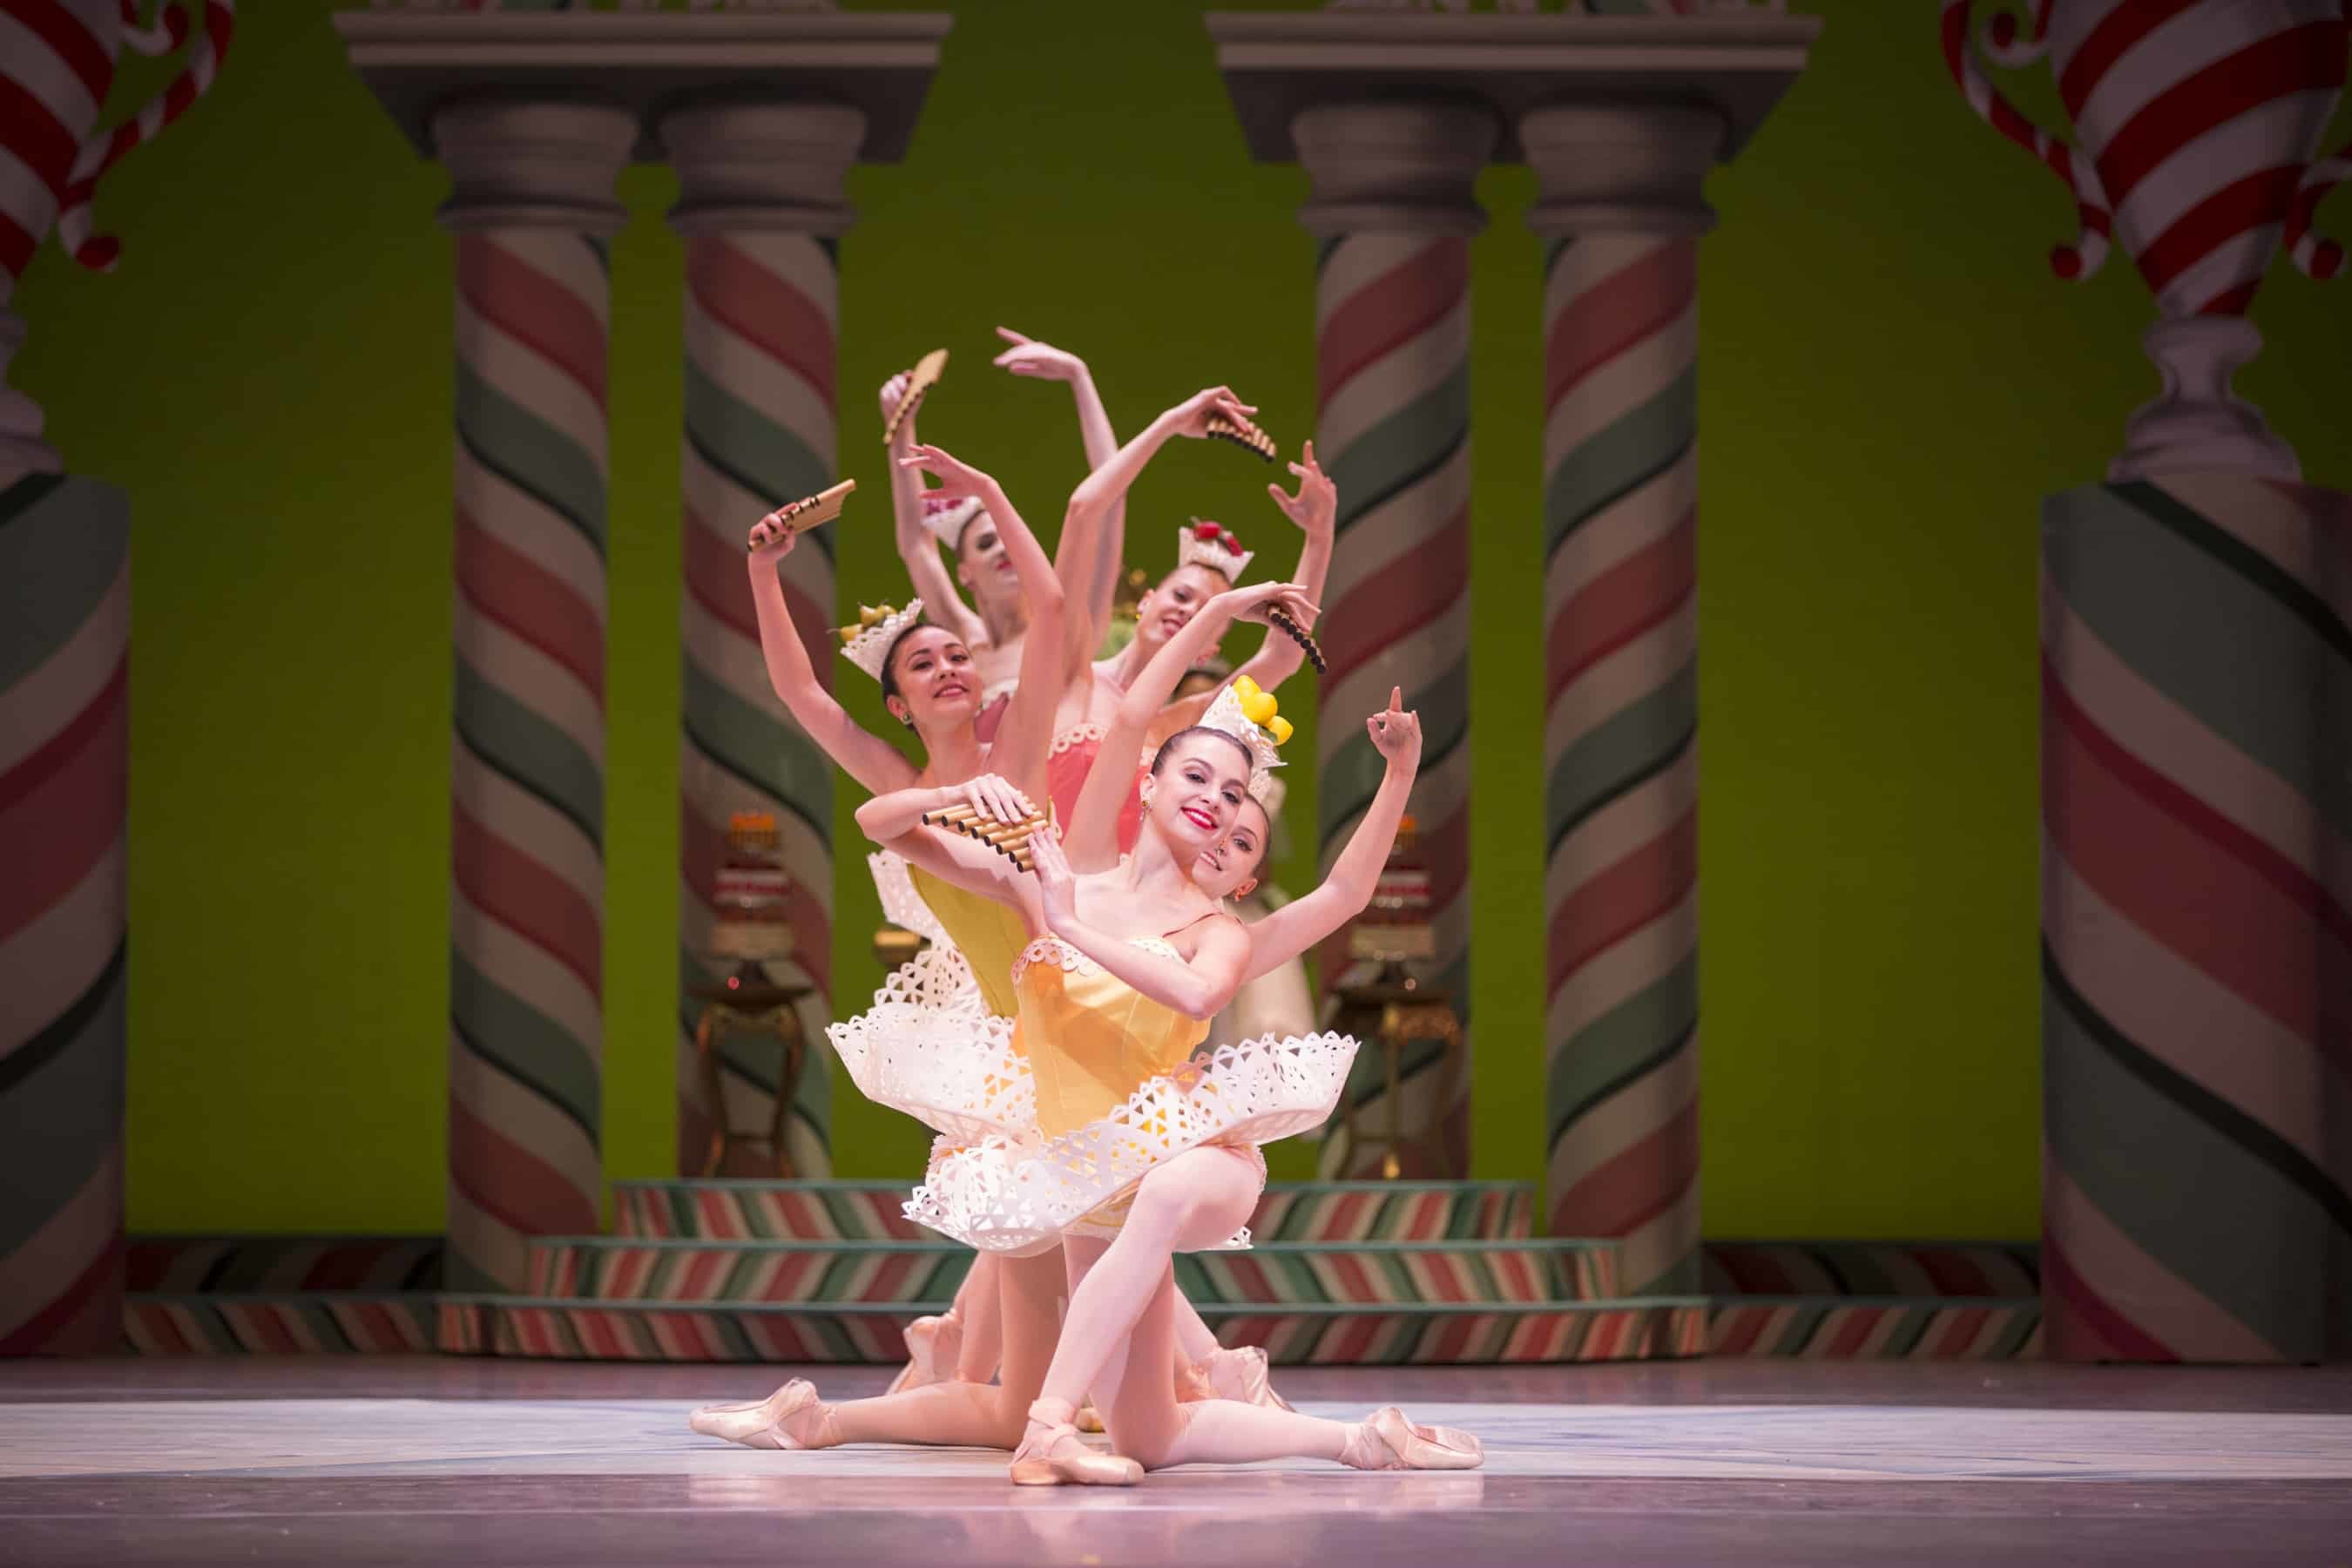 Marzipan. George Balanchine's The Nutcracker®, choreography by George Balanchine © The George Balanchine Trust. Photo © Angela Sterling.